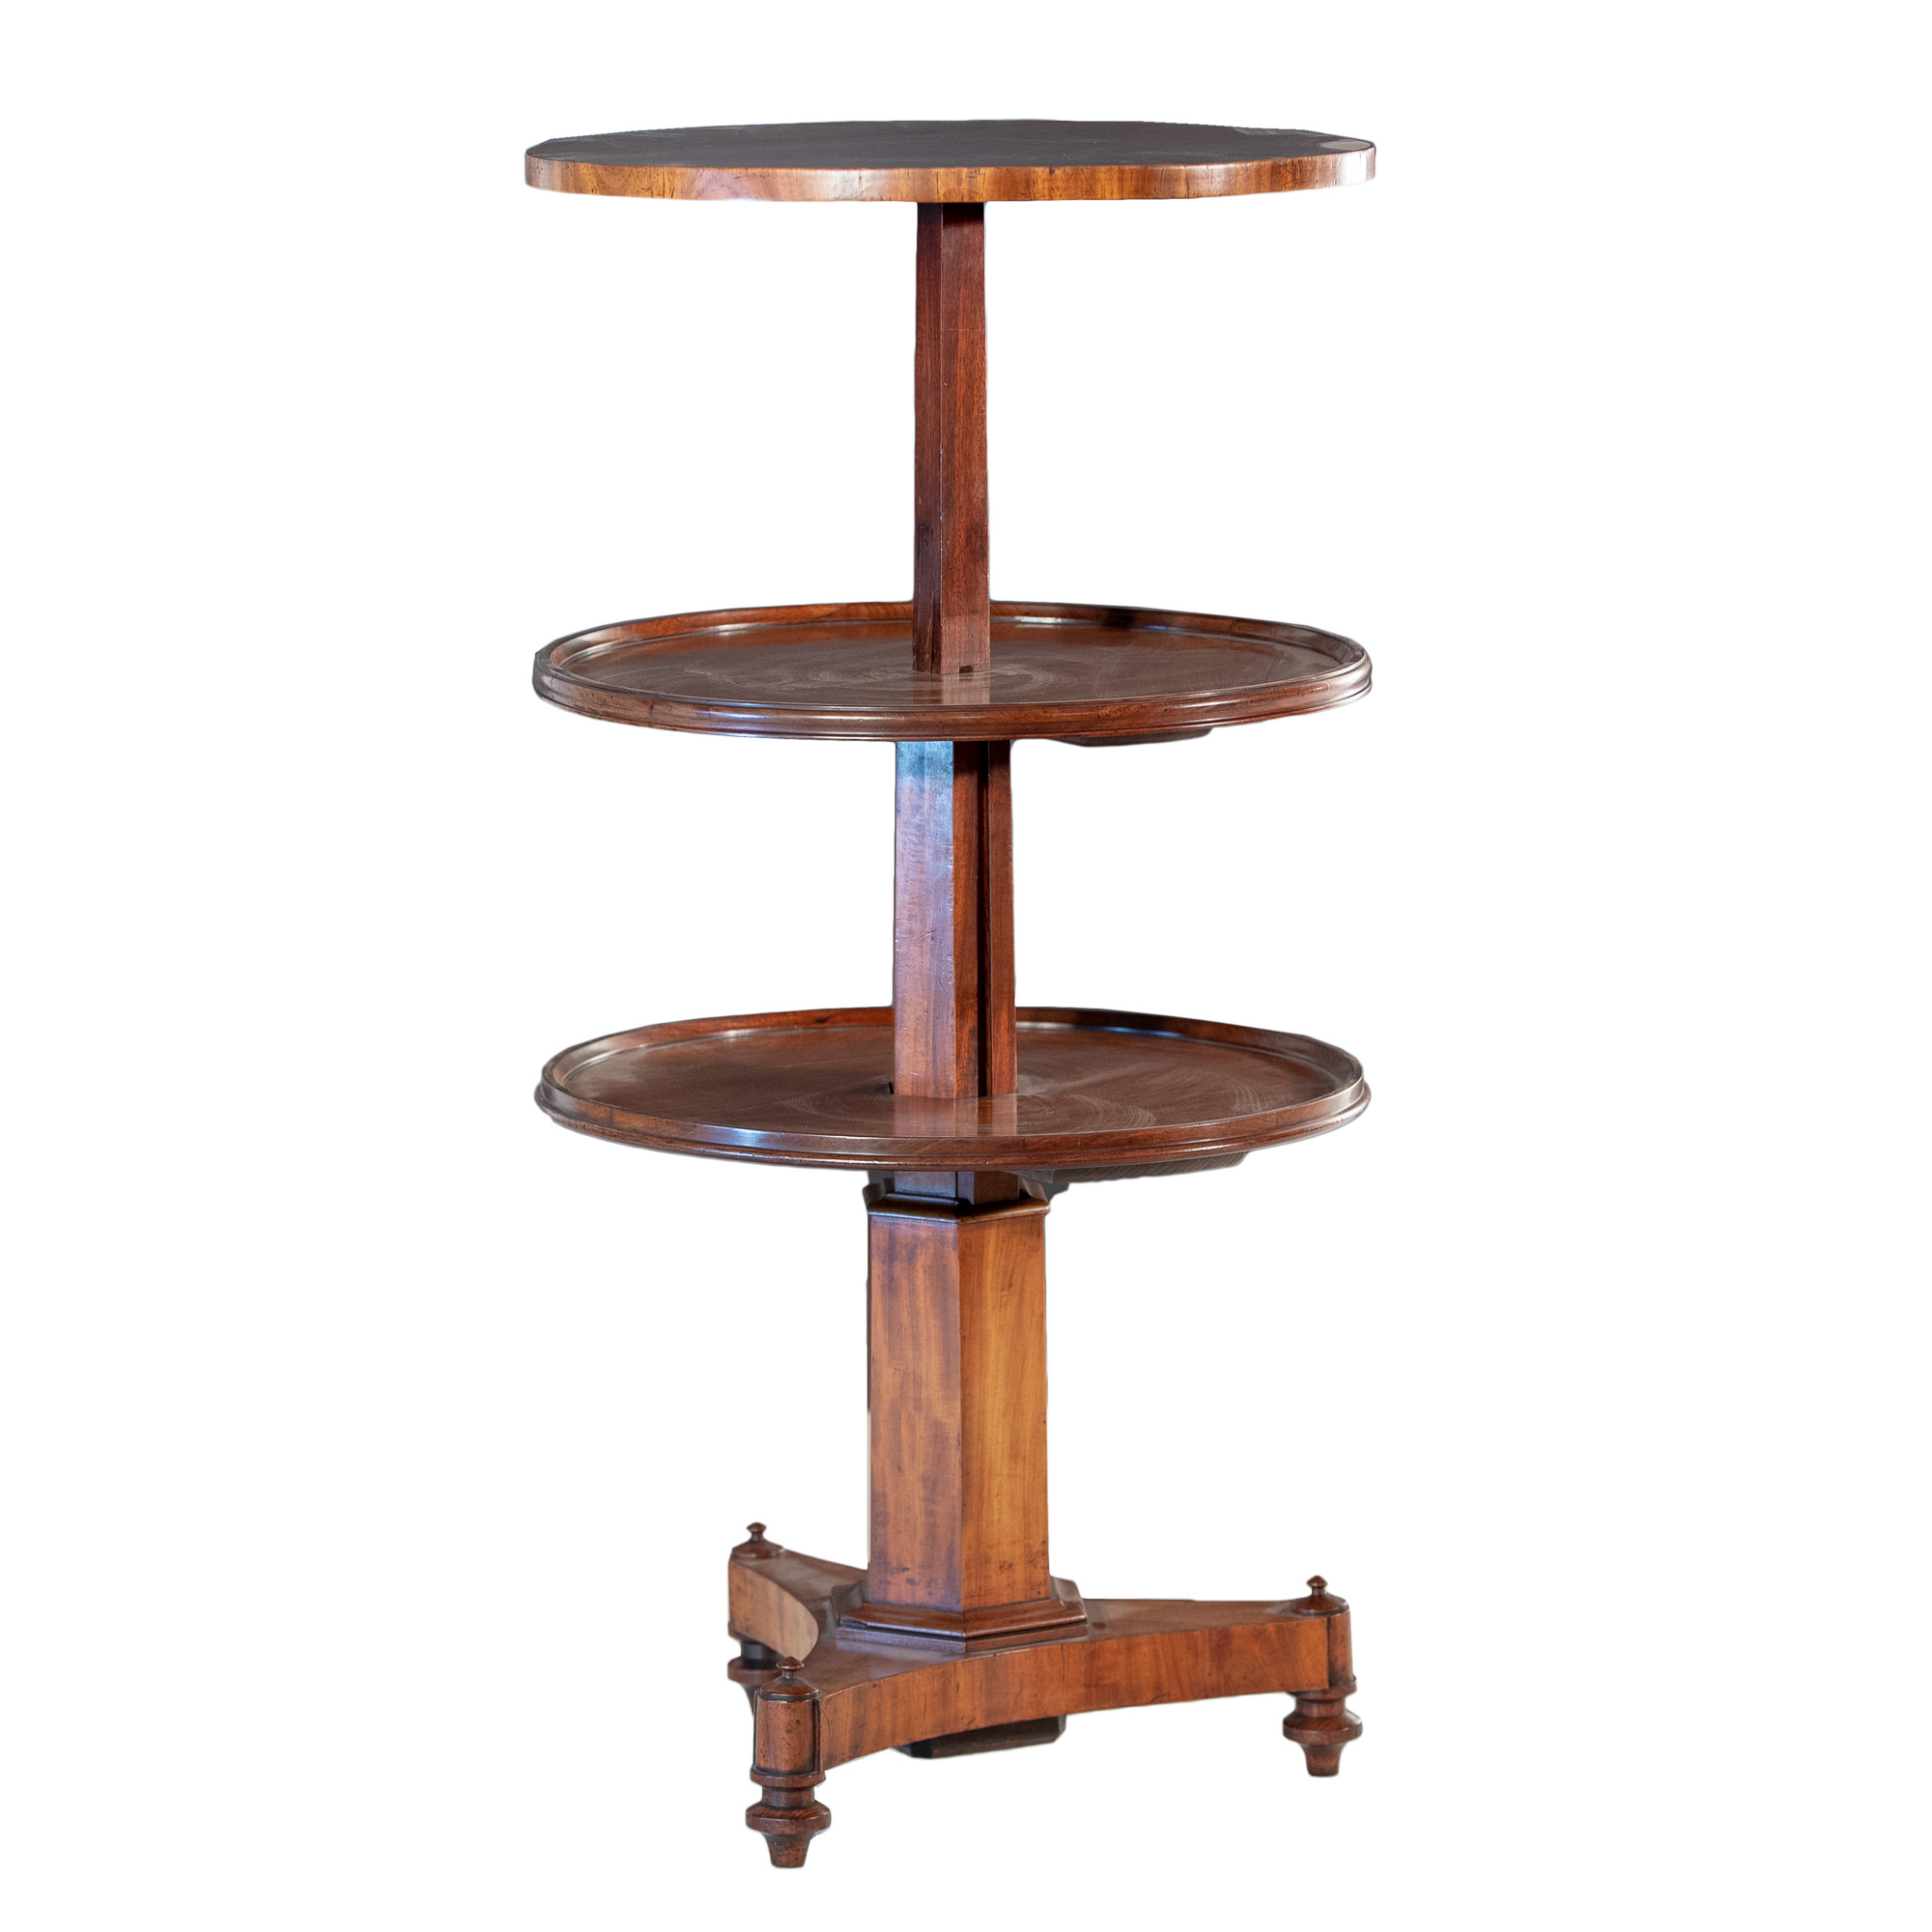 'William IV Mahogany Telescopic Dumbwaiter Wine Table with Faceted Column Circa 1835'